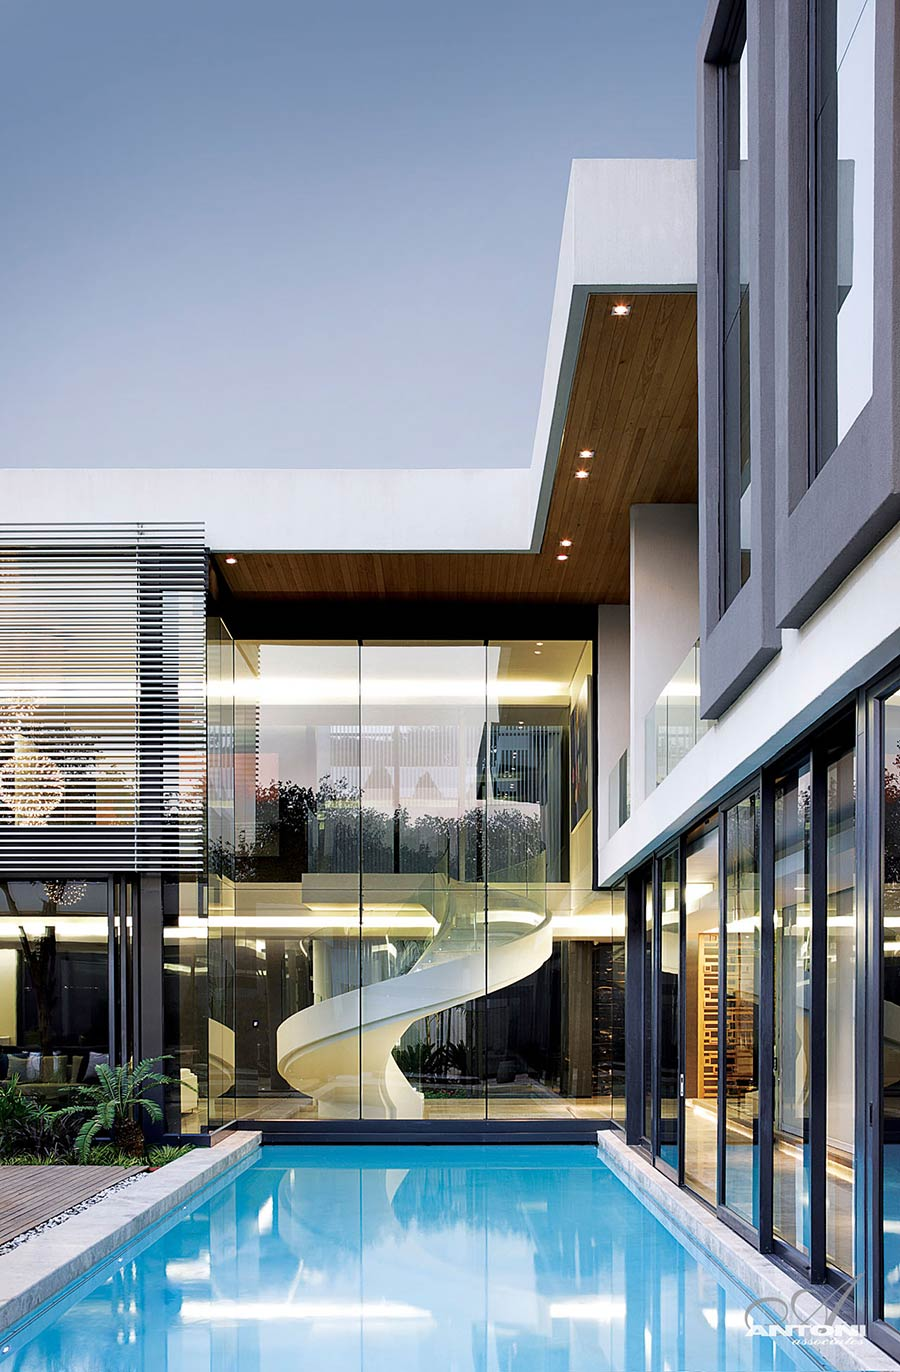 Pool, Glass Walls, Stairs, Houghton Residence, Johannesburg, South Africa